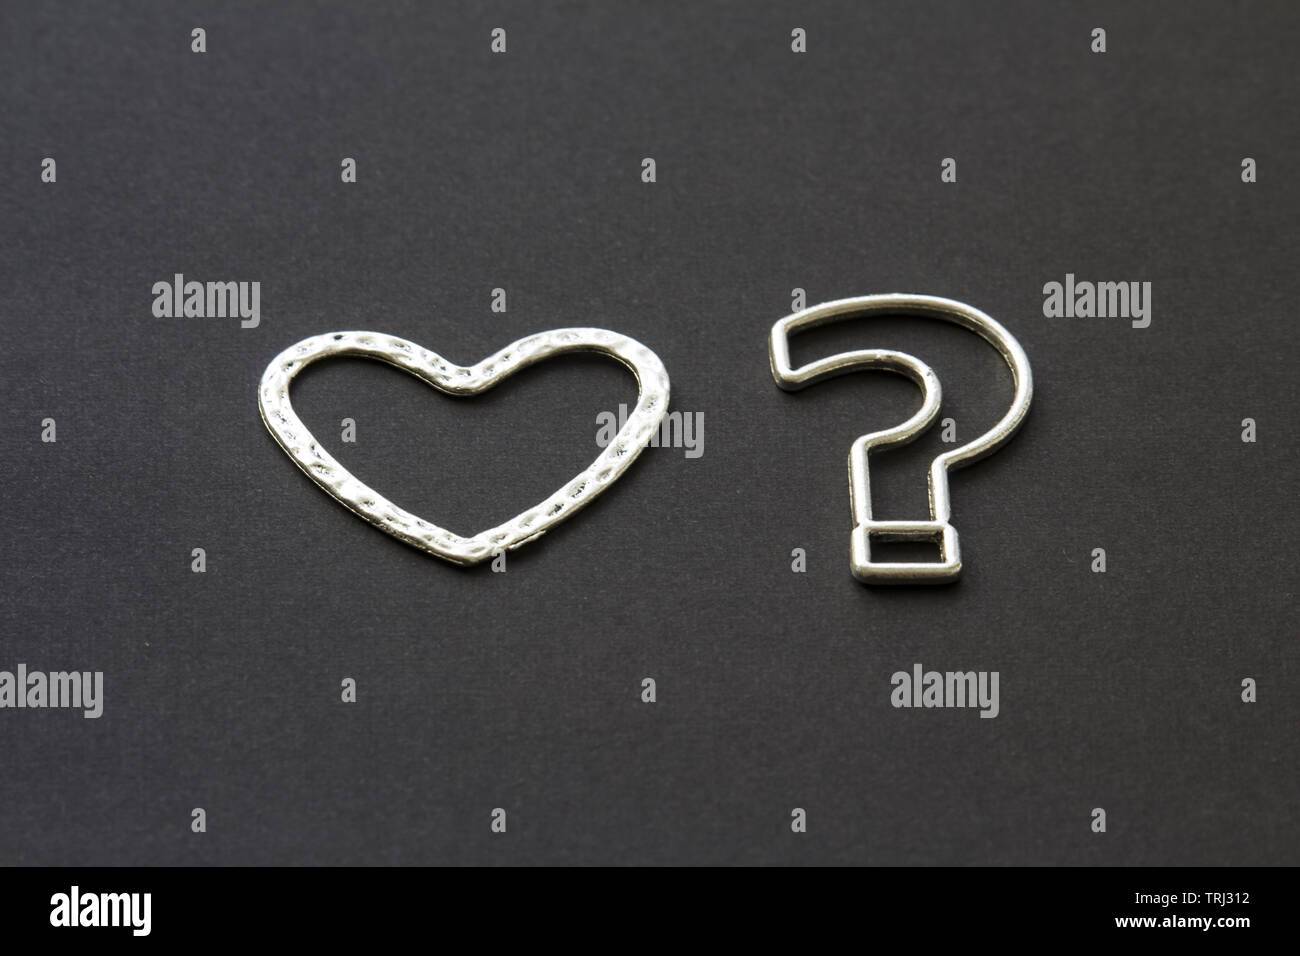 question mark and heart on a black background .likes or dislikes concept - Stock Image